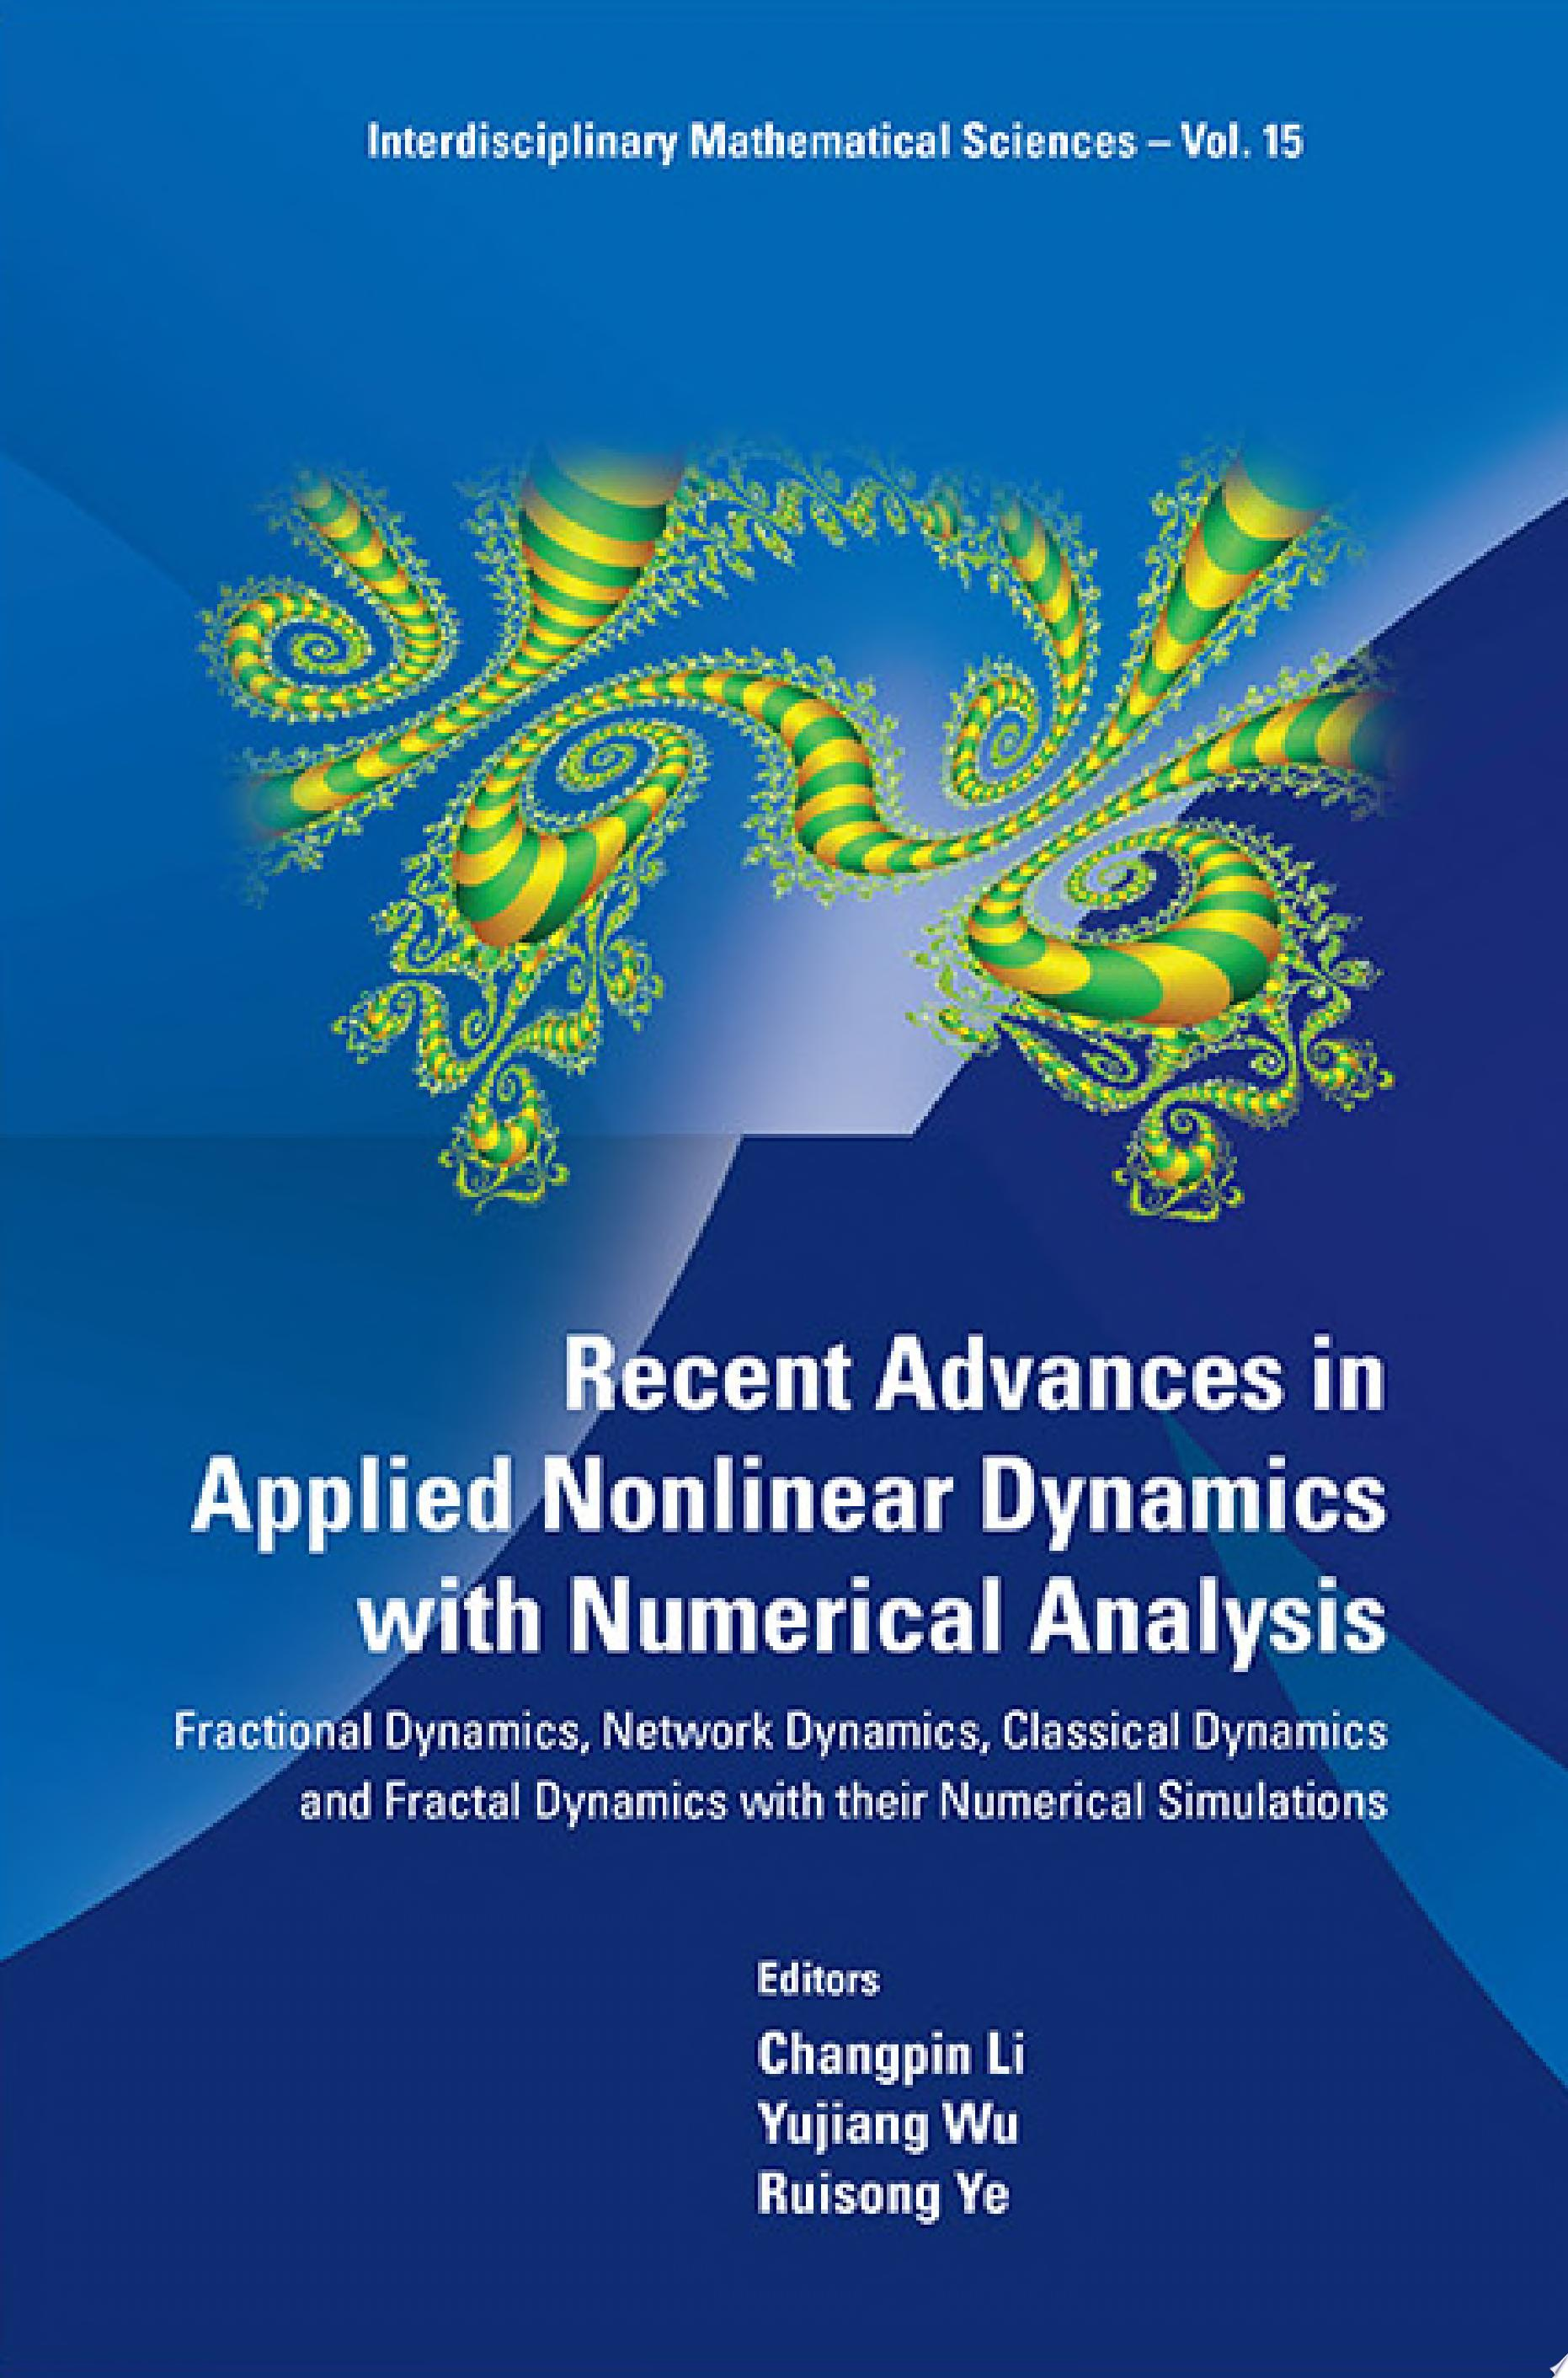 Recent Advances in Applied Nonlinear Dynamics with Numerical Analysis